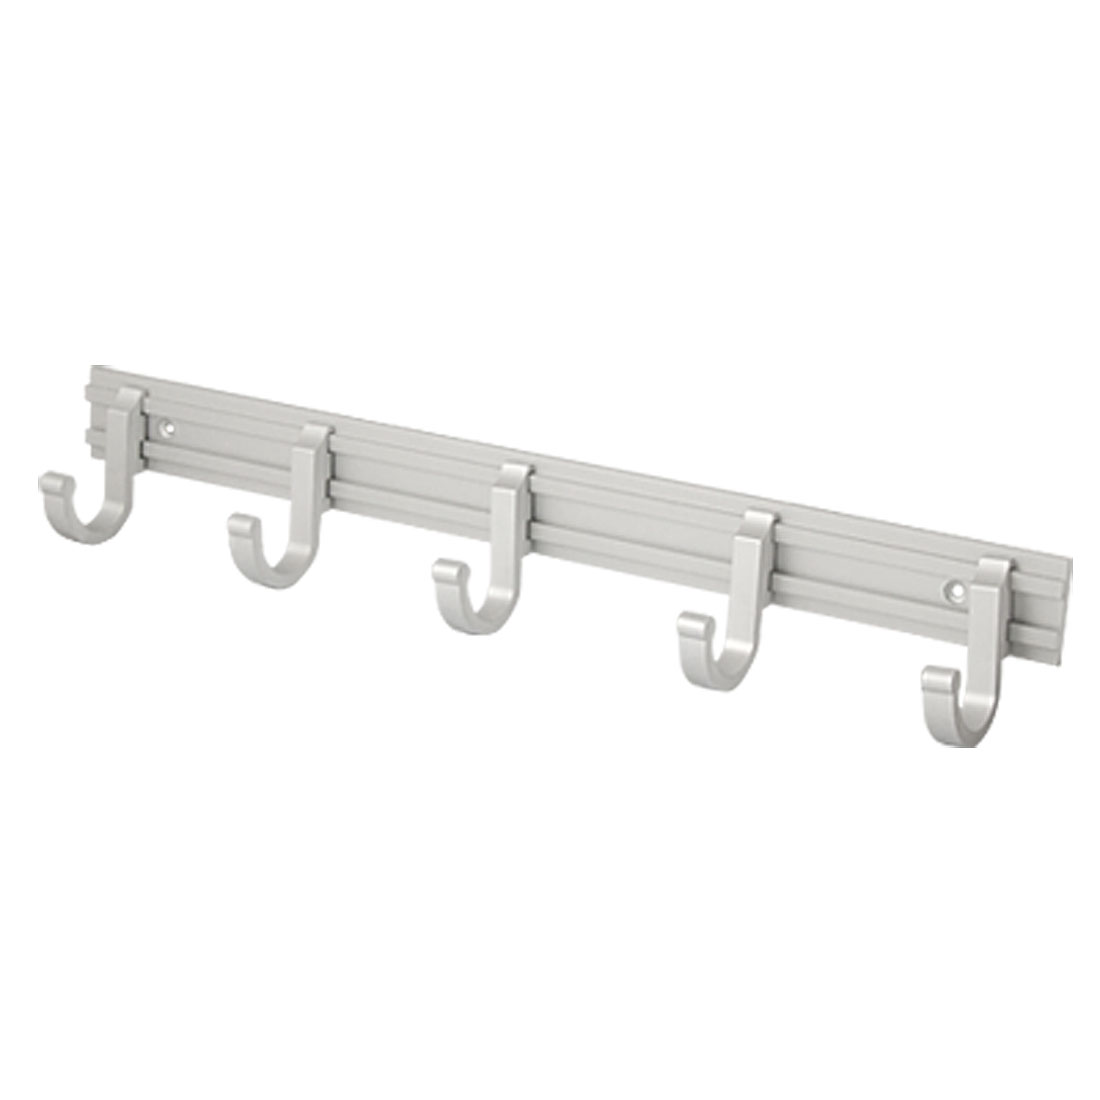 5 in 1 Aluminium Alloy Hooks Wall Mount Towel Holder